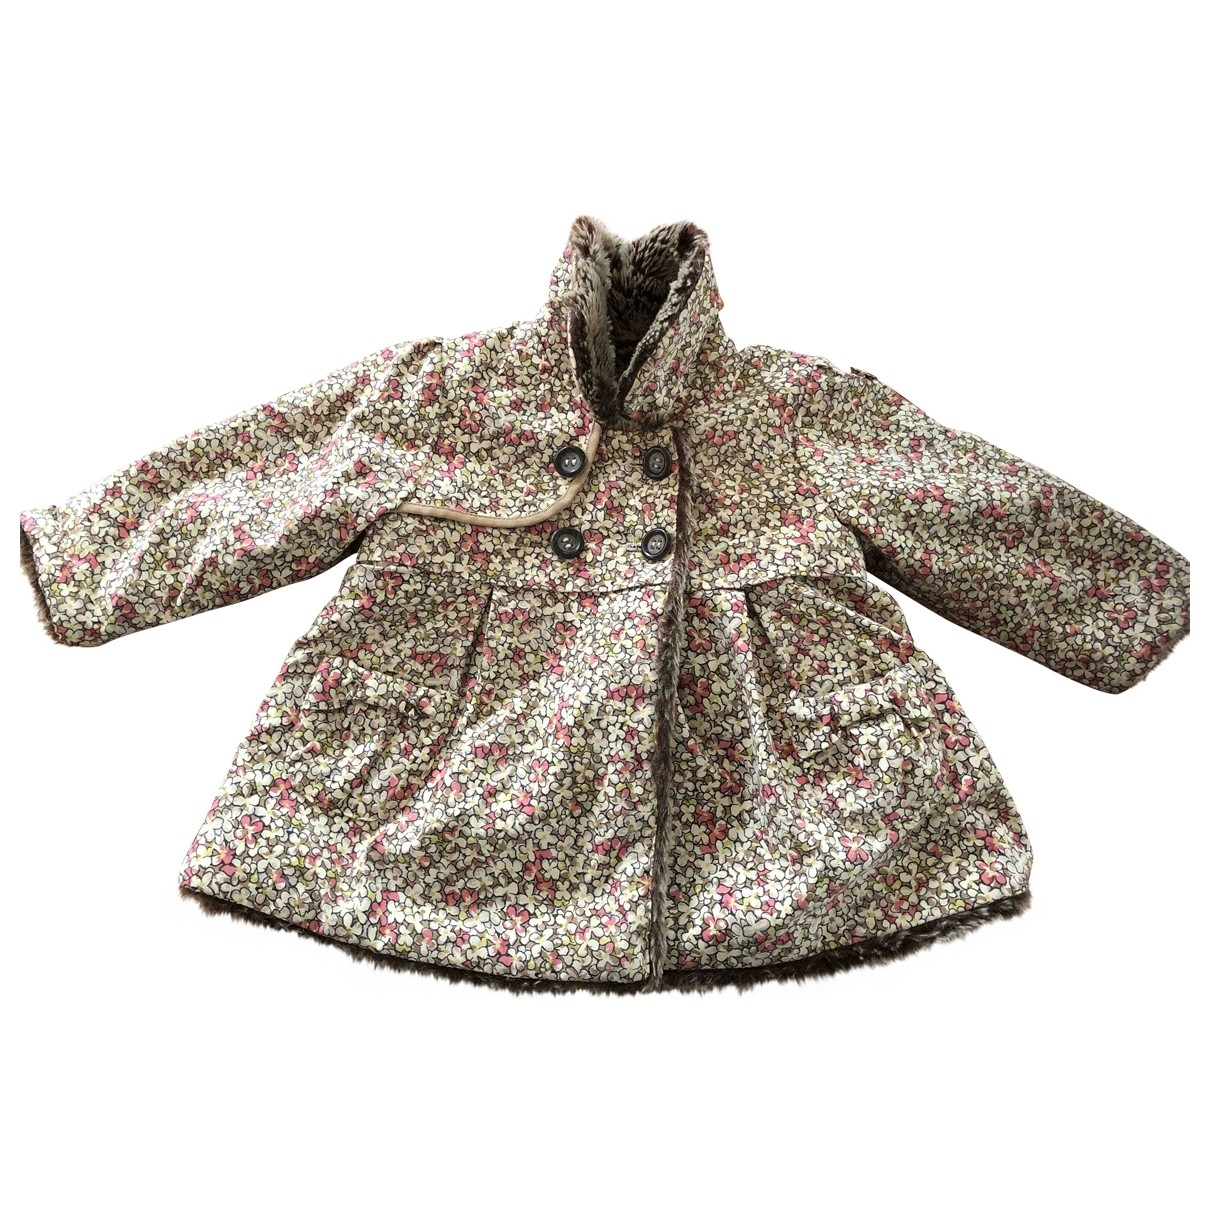 Kenzo \N Multicolour jacket & coat for Kids 6 months - up to 67cm FR